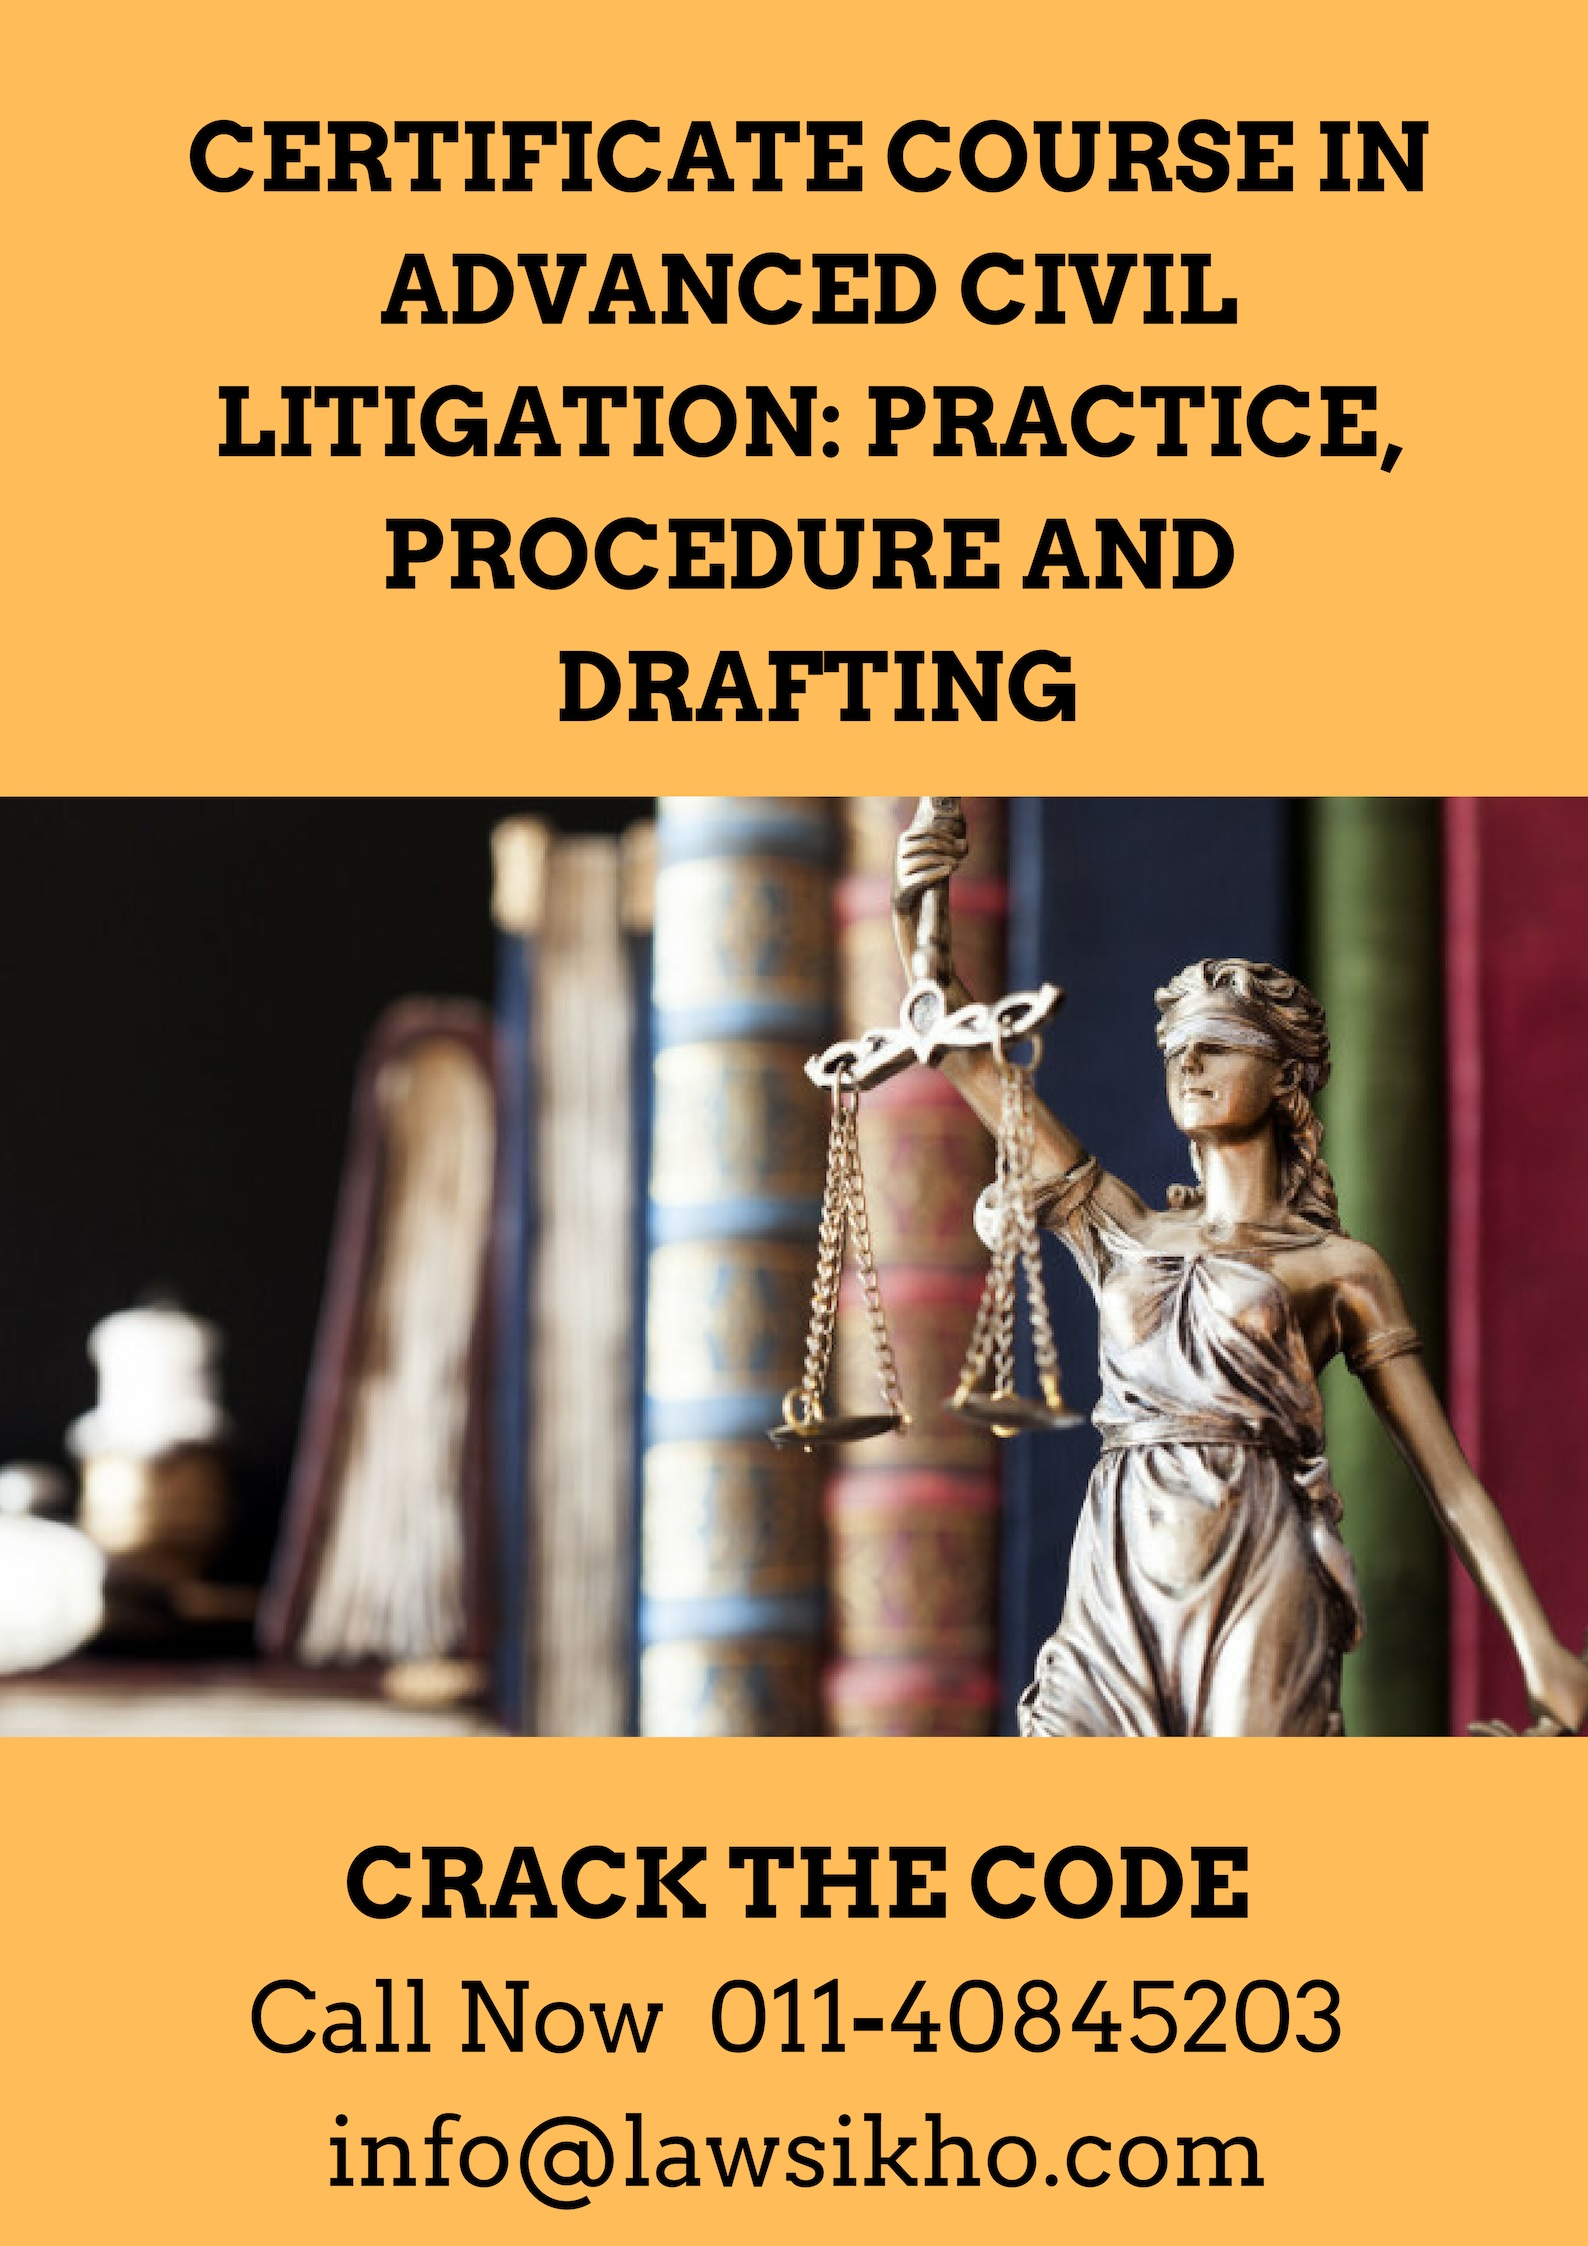 https://lawsikho.com/course/certificate-course-in-advanced-civil-litigation-practice-procedure-and-drafting